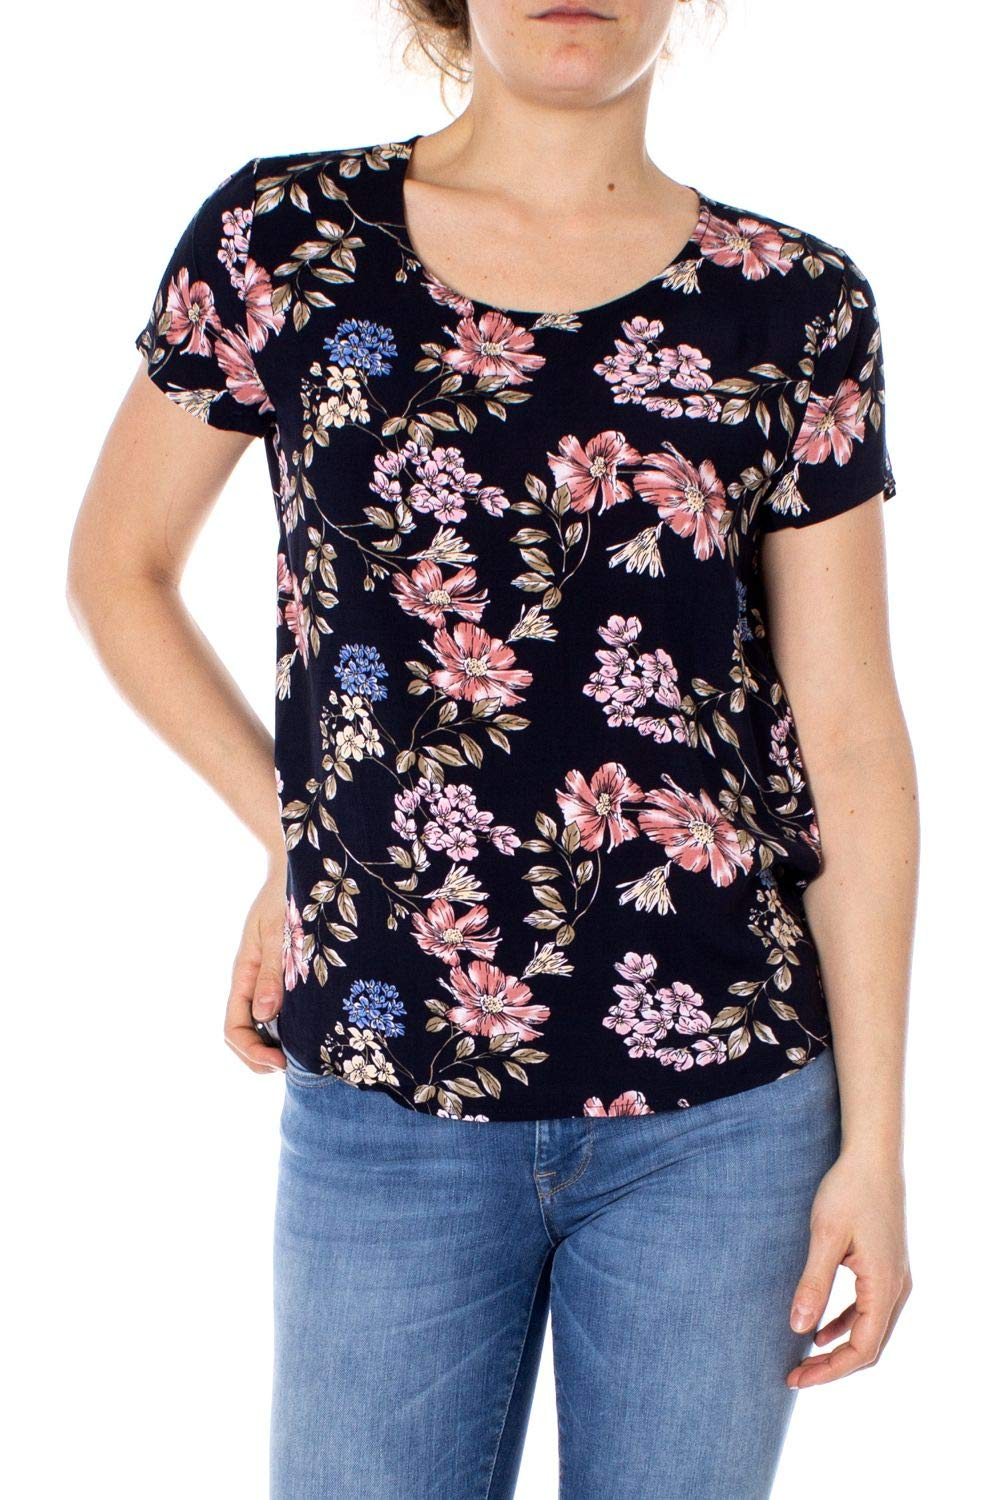 Only Women's 15138761blueE bluee Viscose TShirt